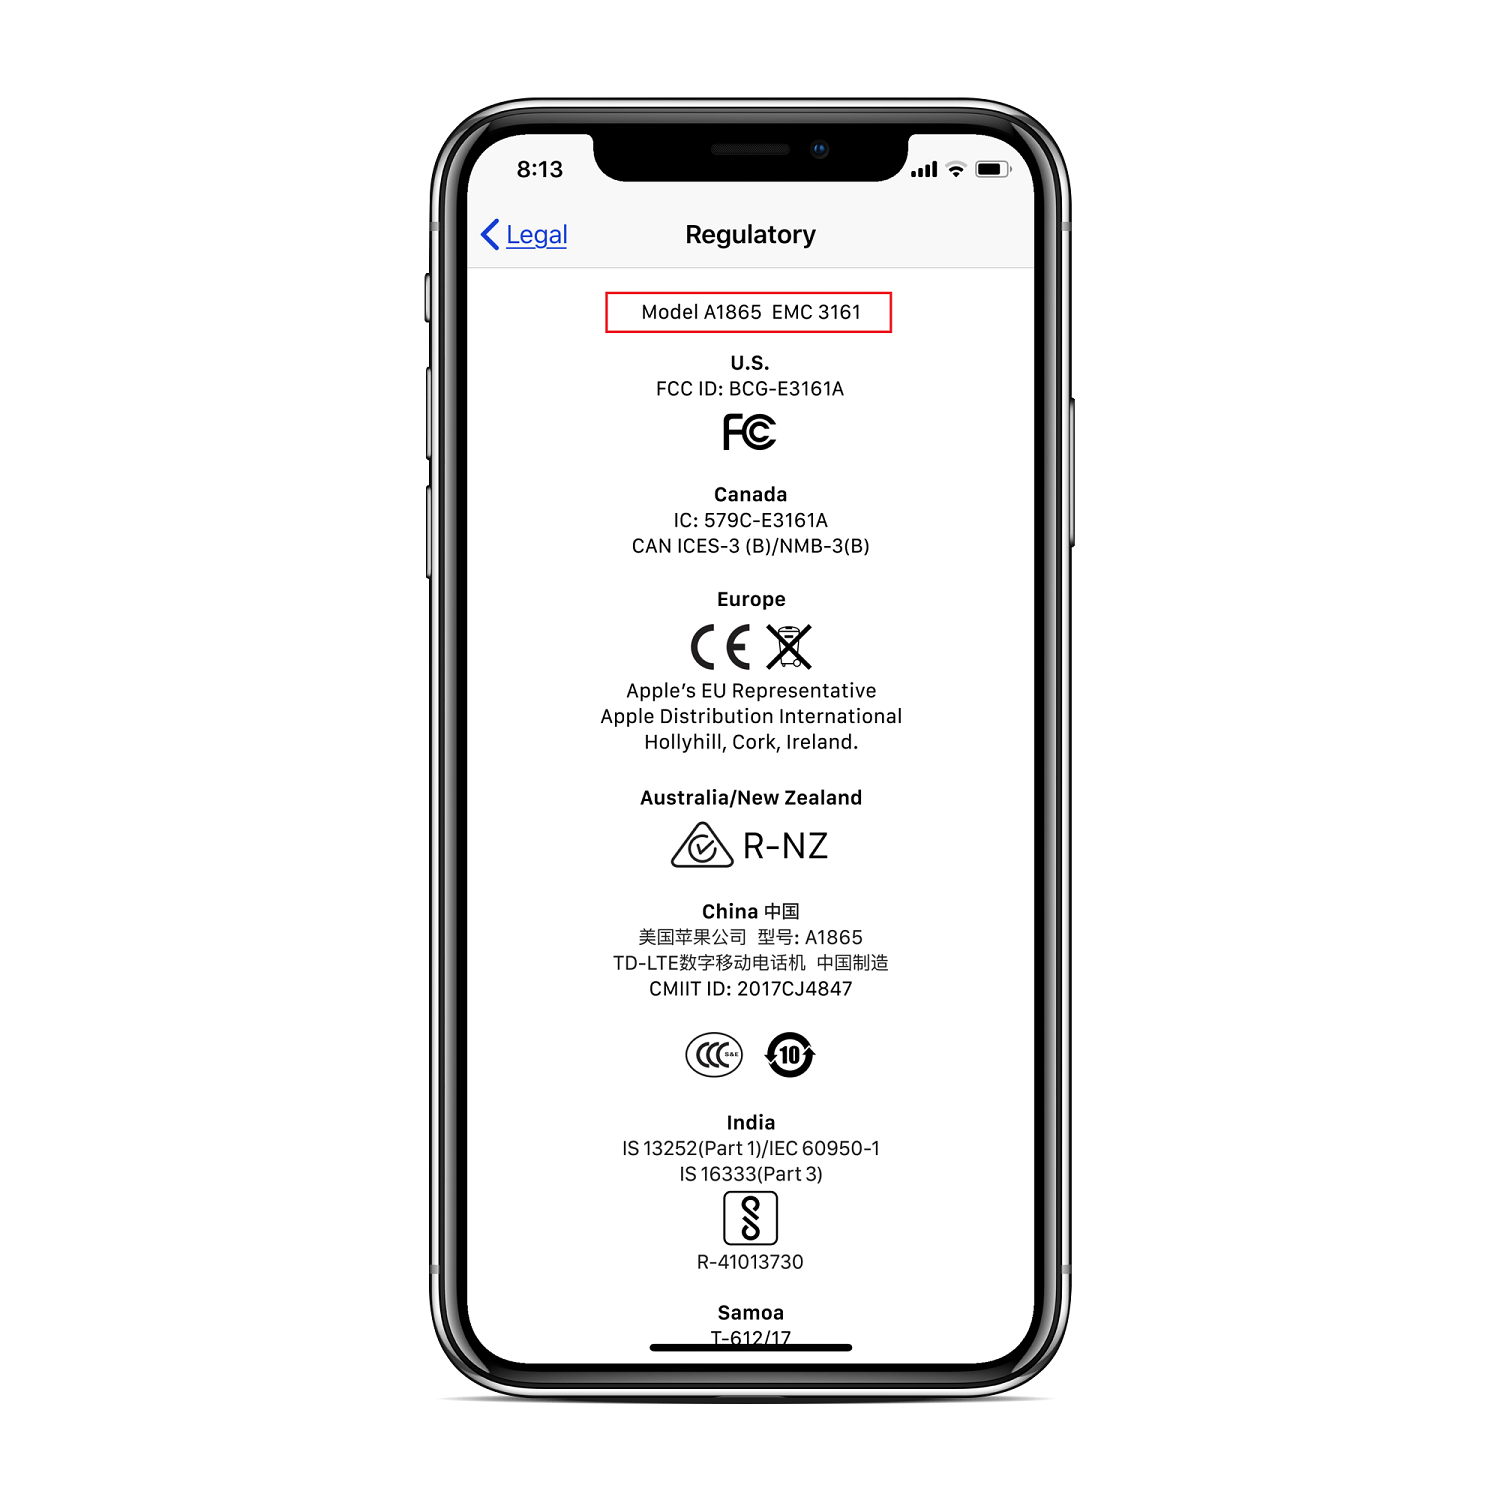 How to Identify if Your iPhone X has Qualcomm or Intel modem